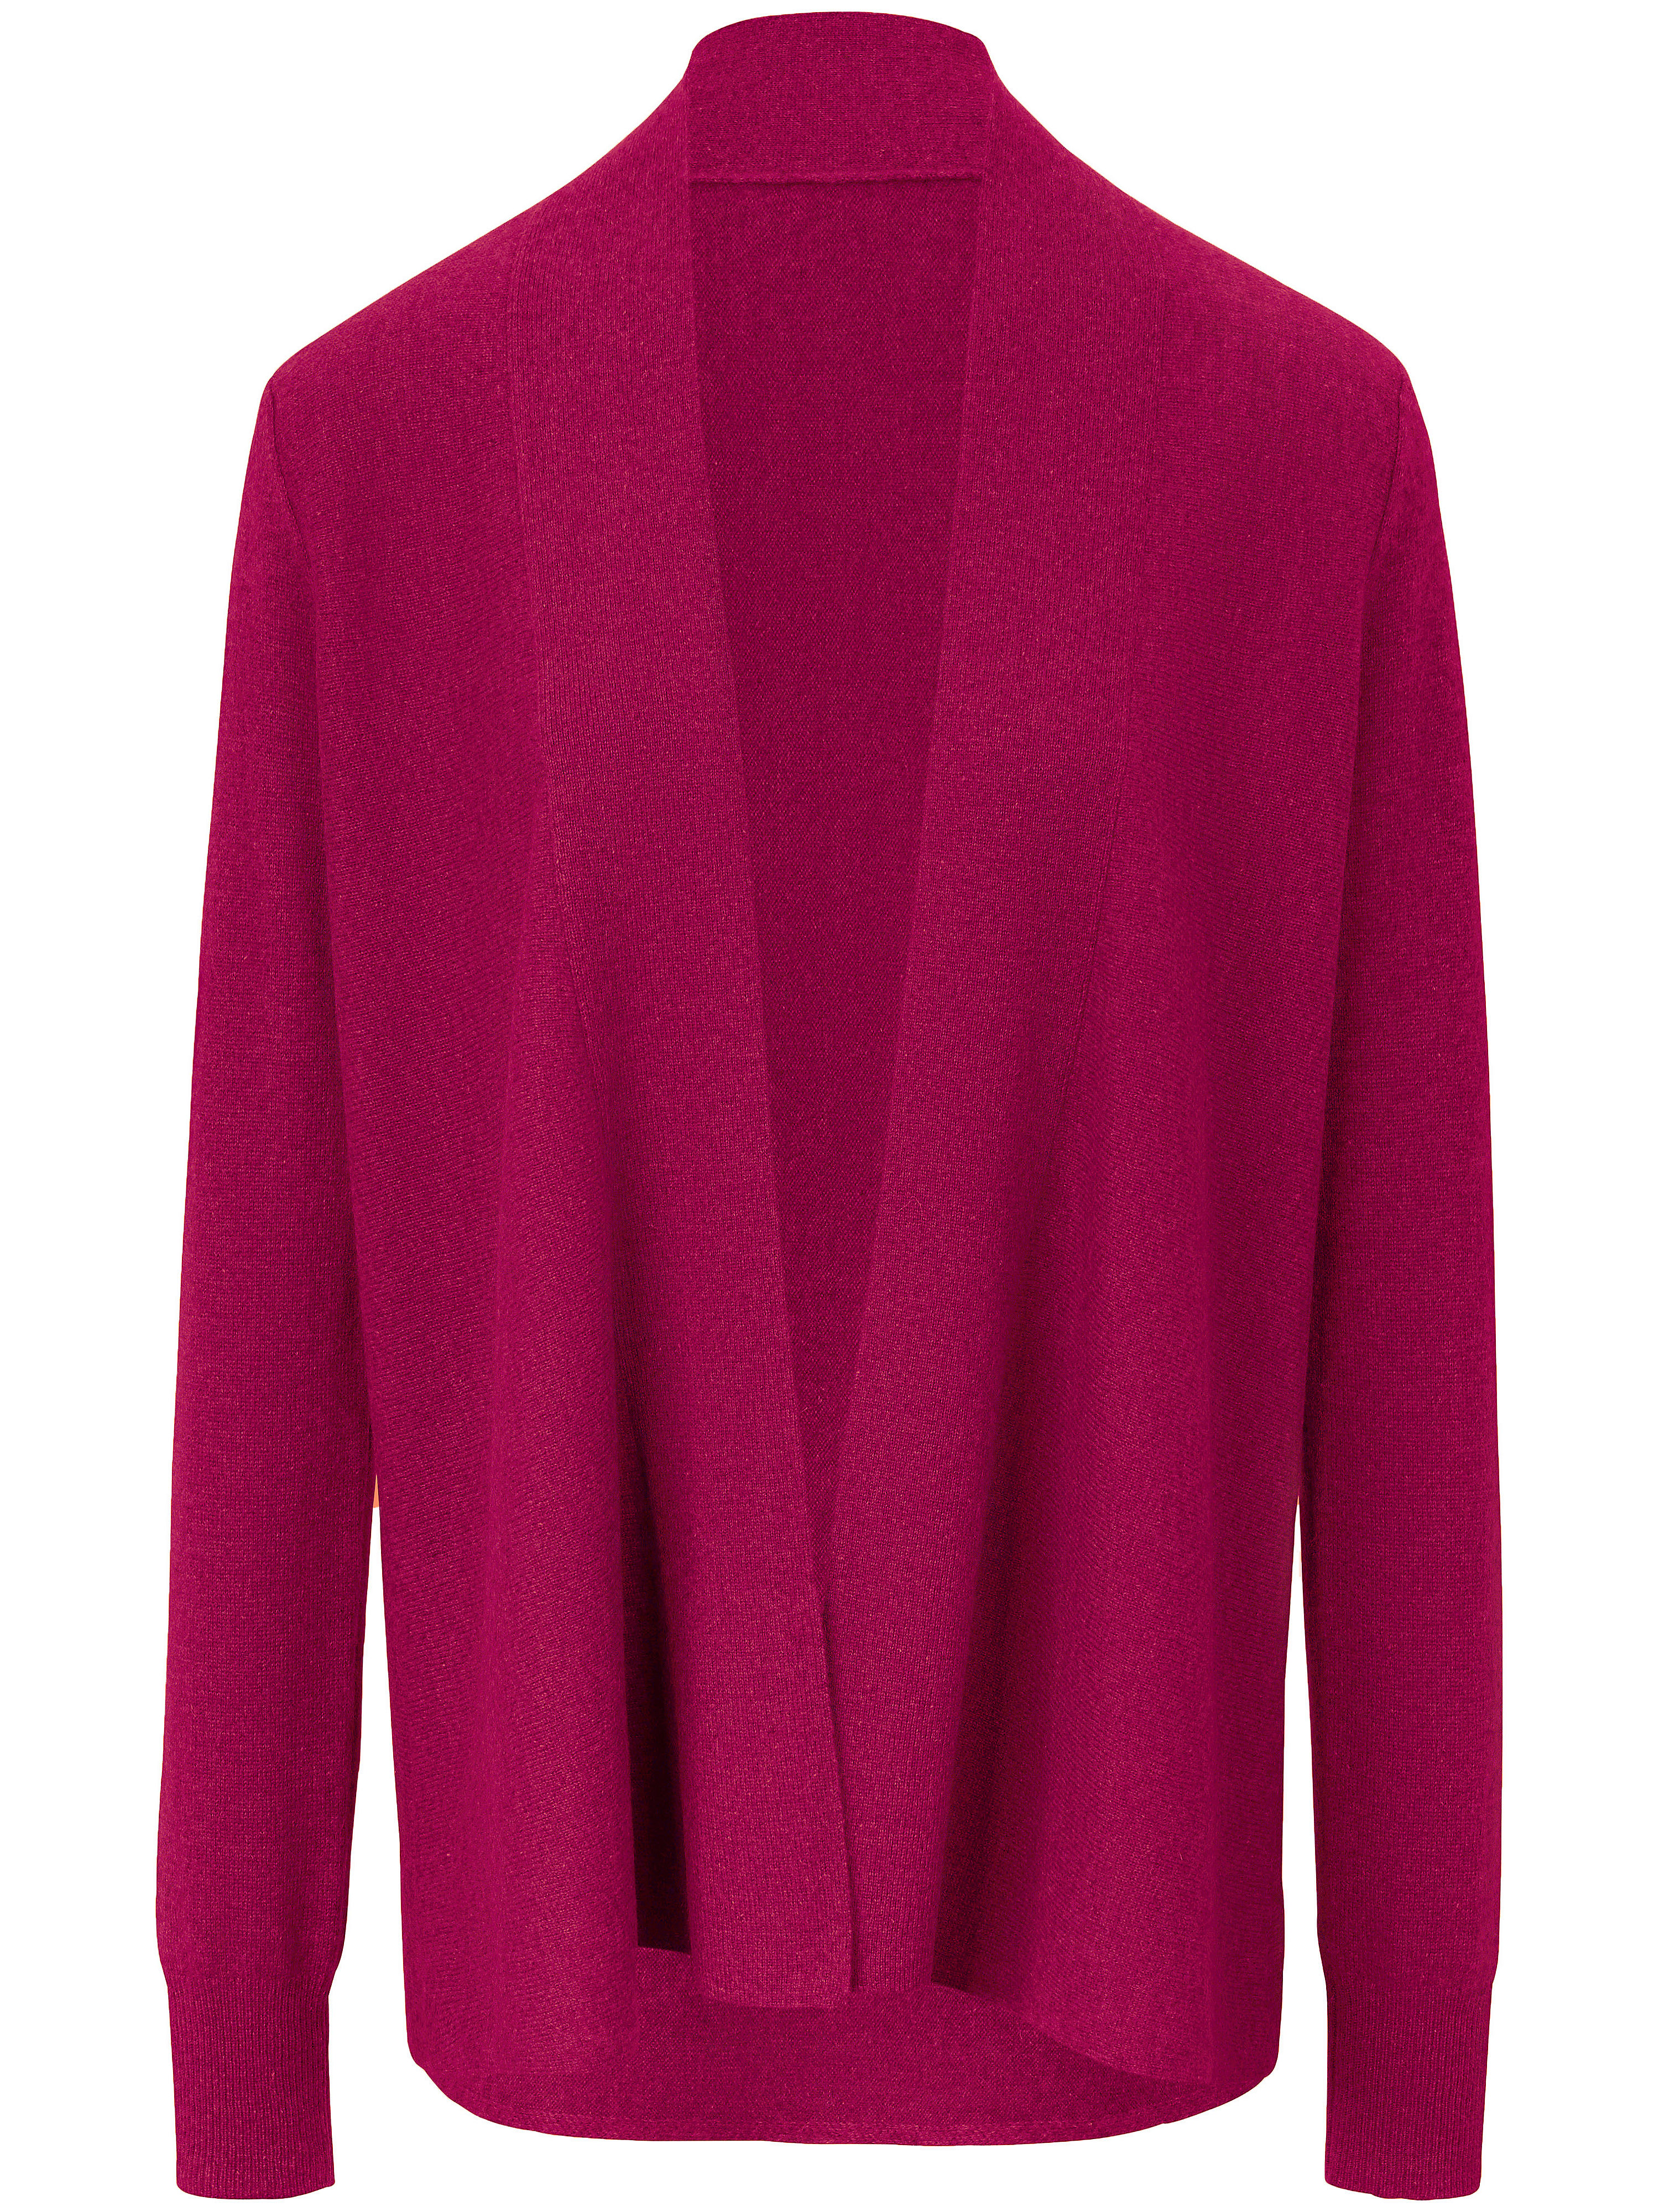 Le gilet 100% cachemire  Peter Hahn Cashmere fuchsia taille 46